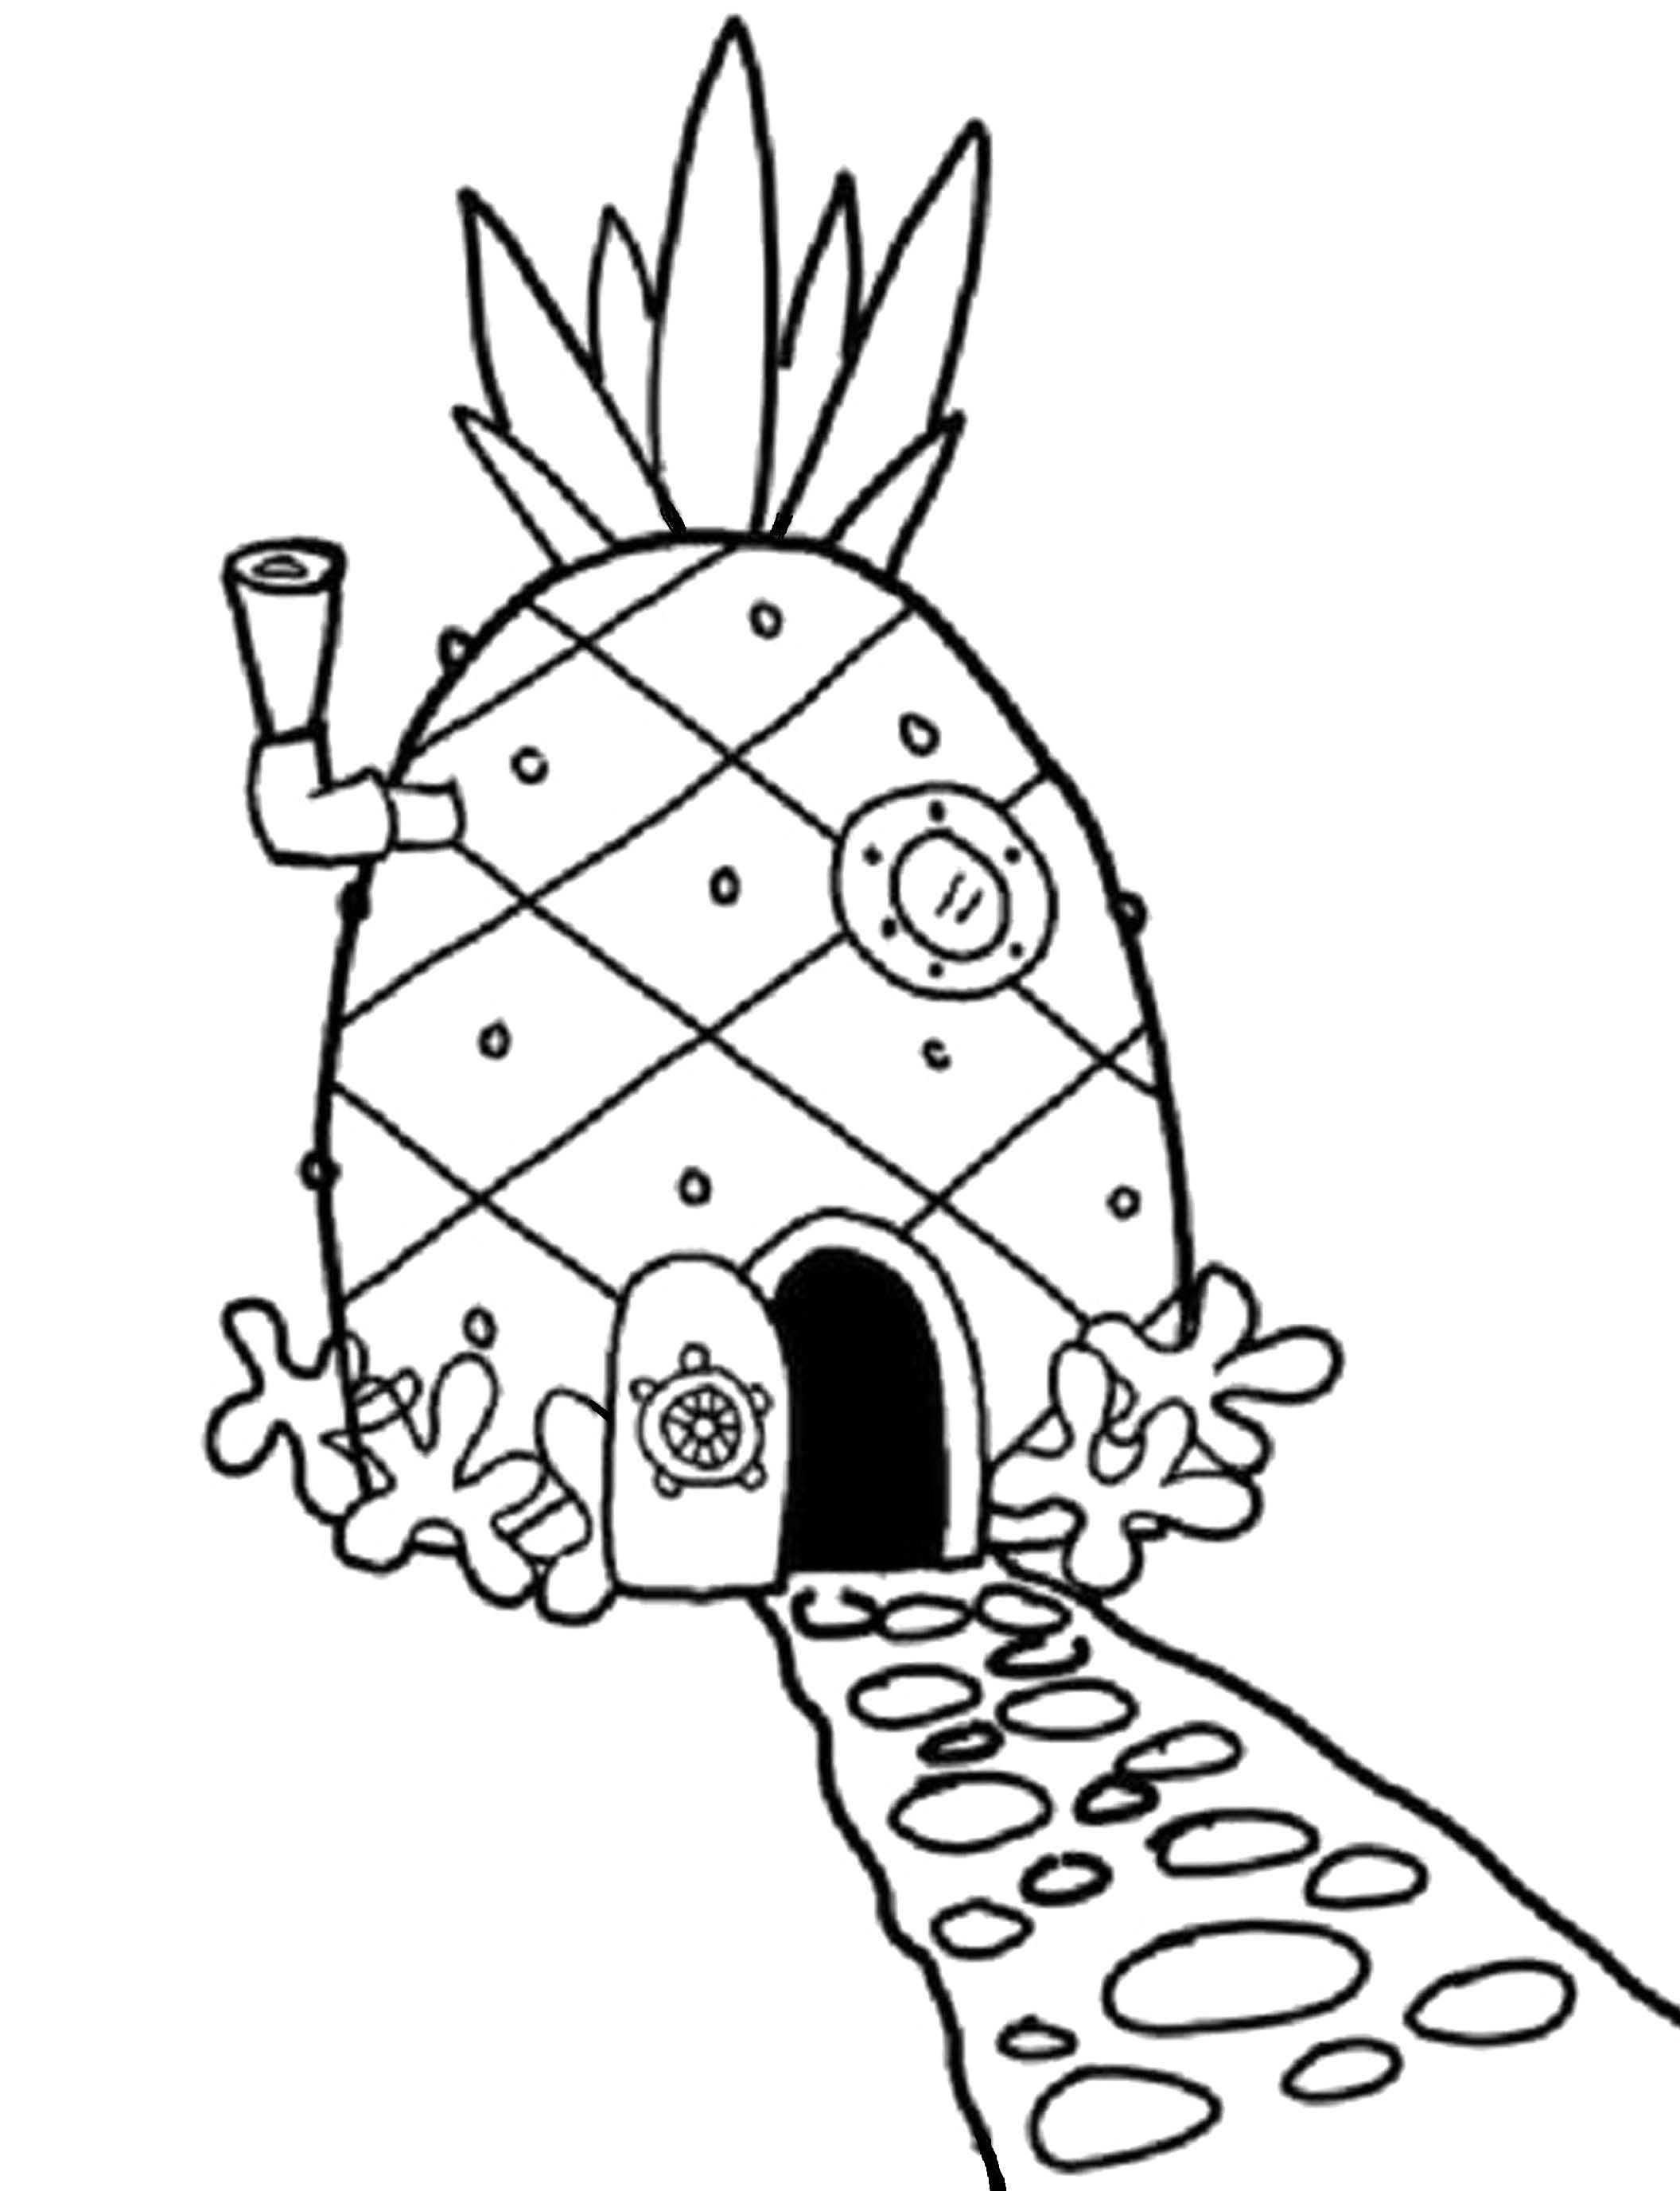 Spongebob House Coloring Pages From The Thousands Of